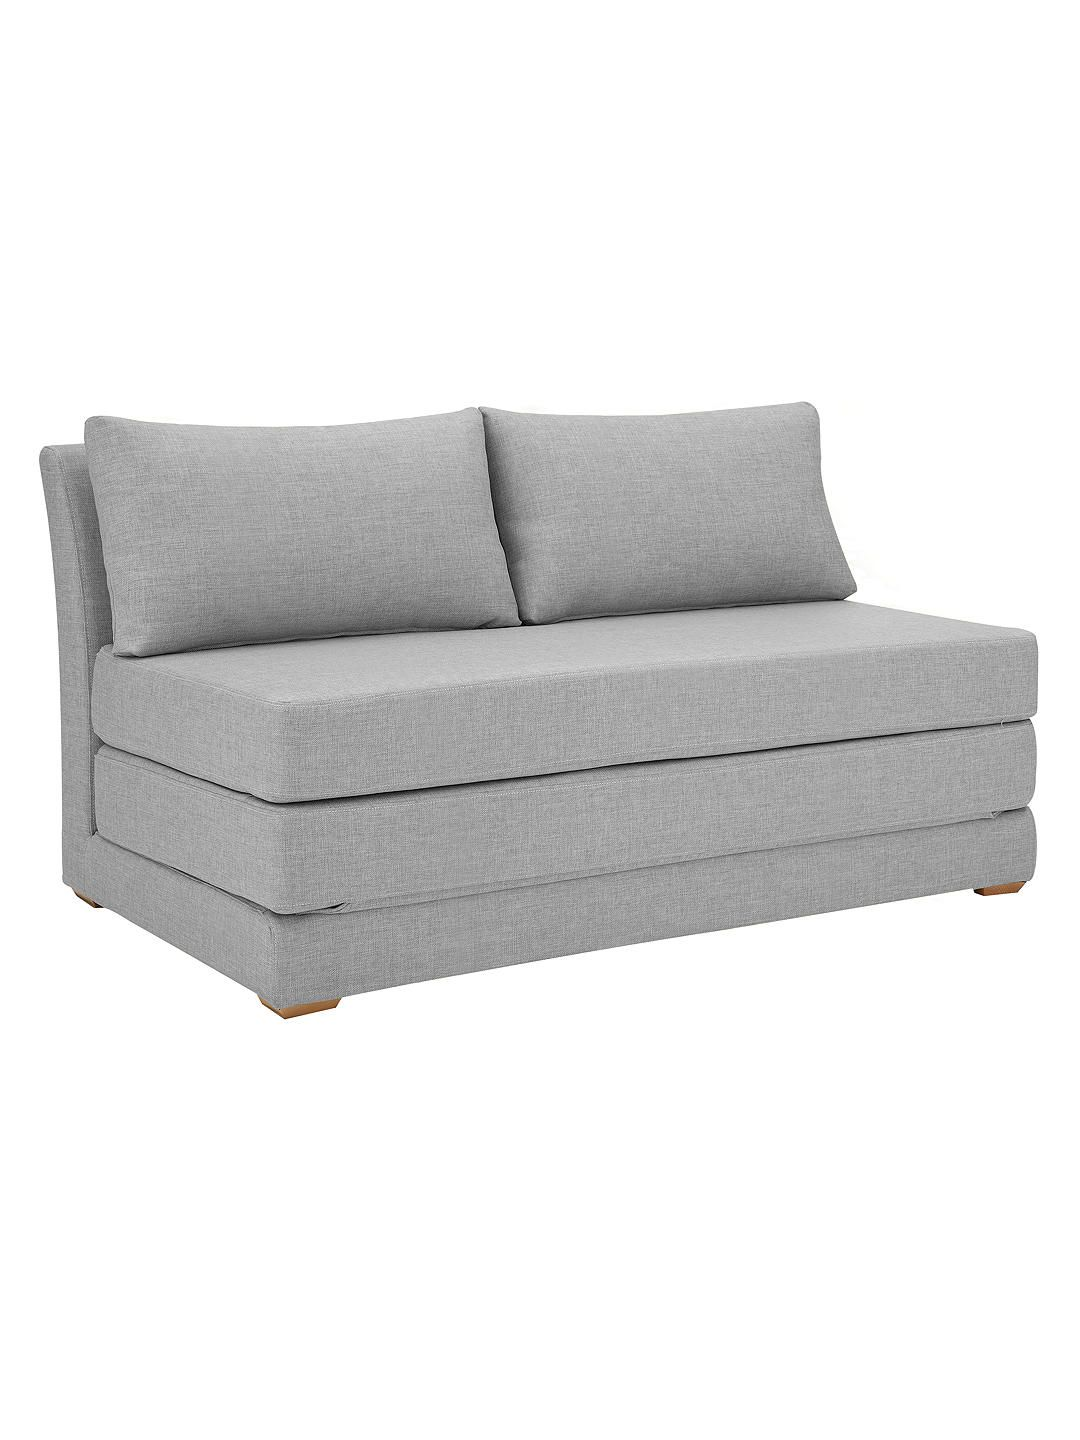 House By John Lewis Kip Small Sofa Bed With Foam Mattress At John Lewis Partners Small Sofa Bed Sofa Bed Guest Room Small Sofa